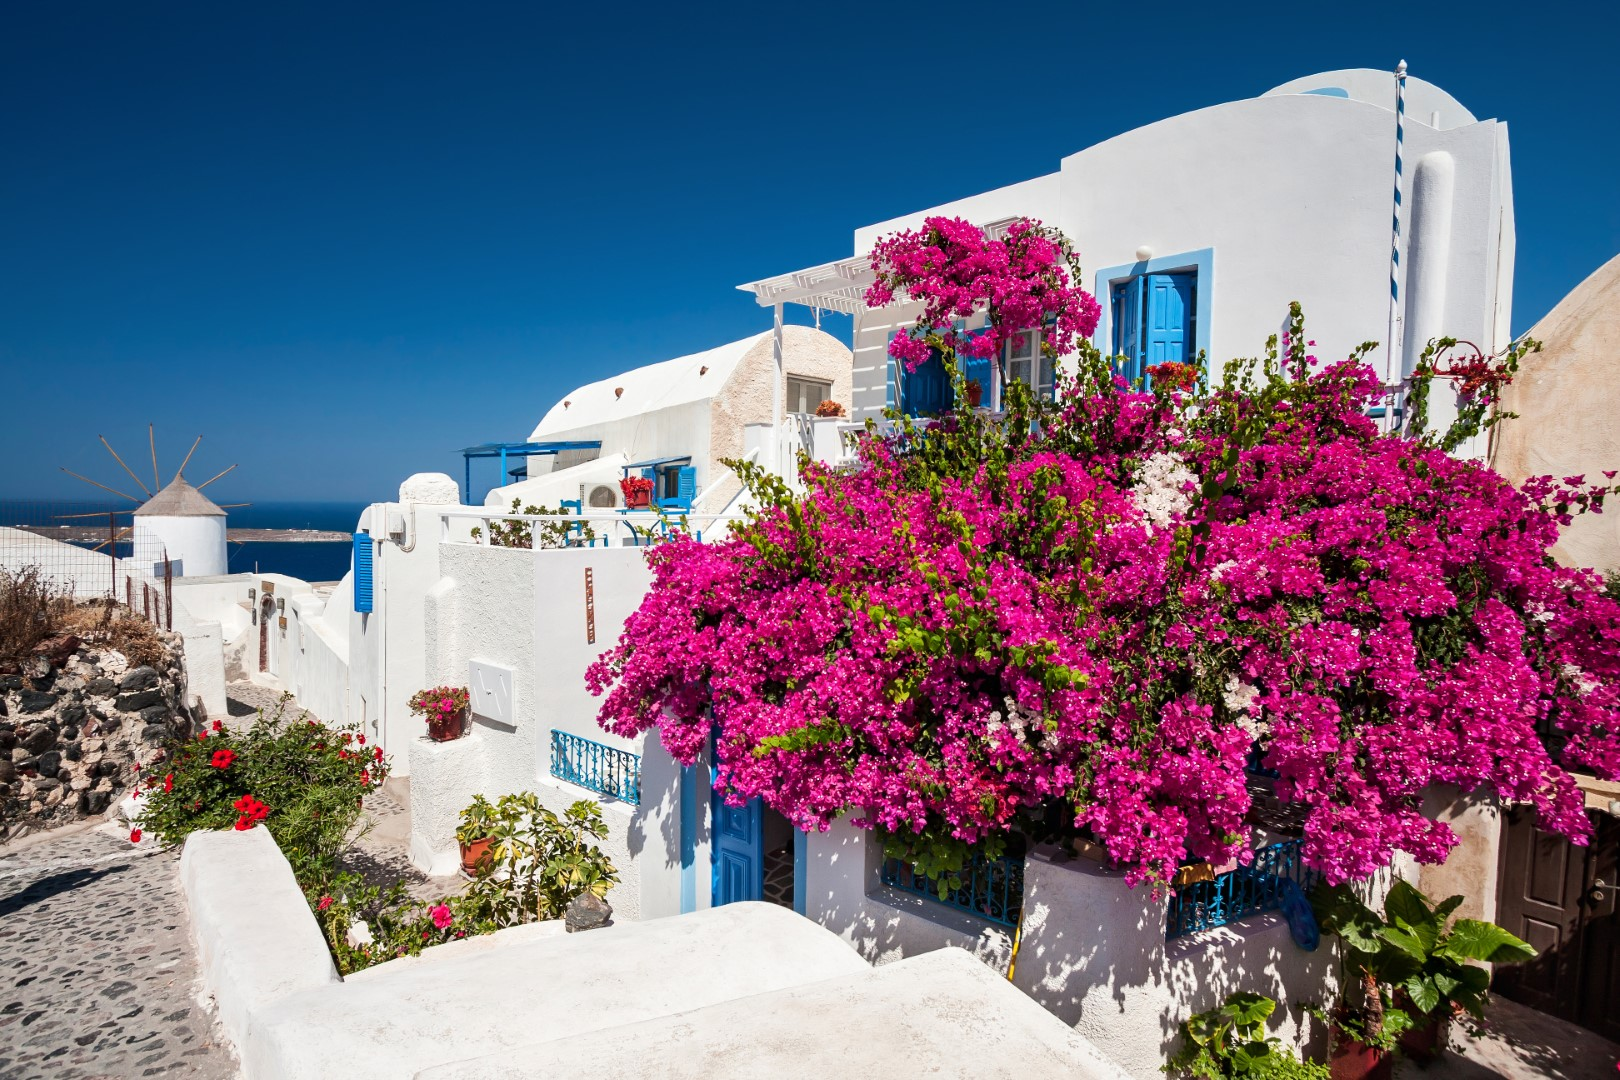 The Greek property market is gaining momentum